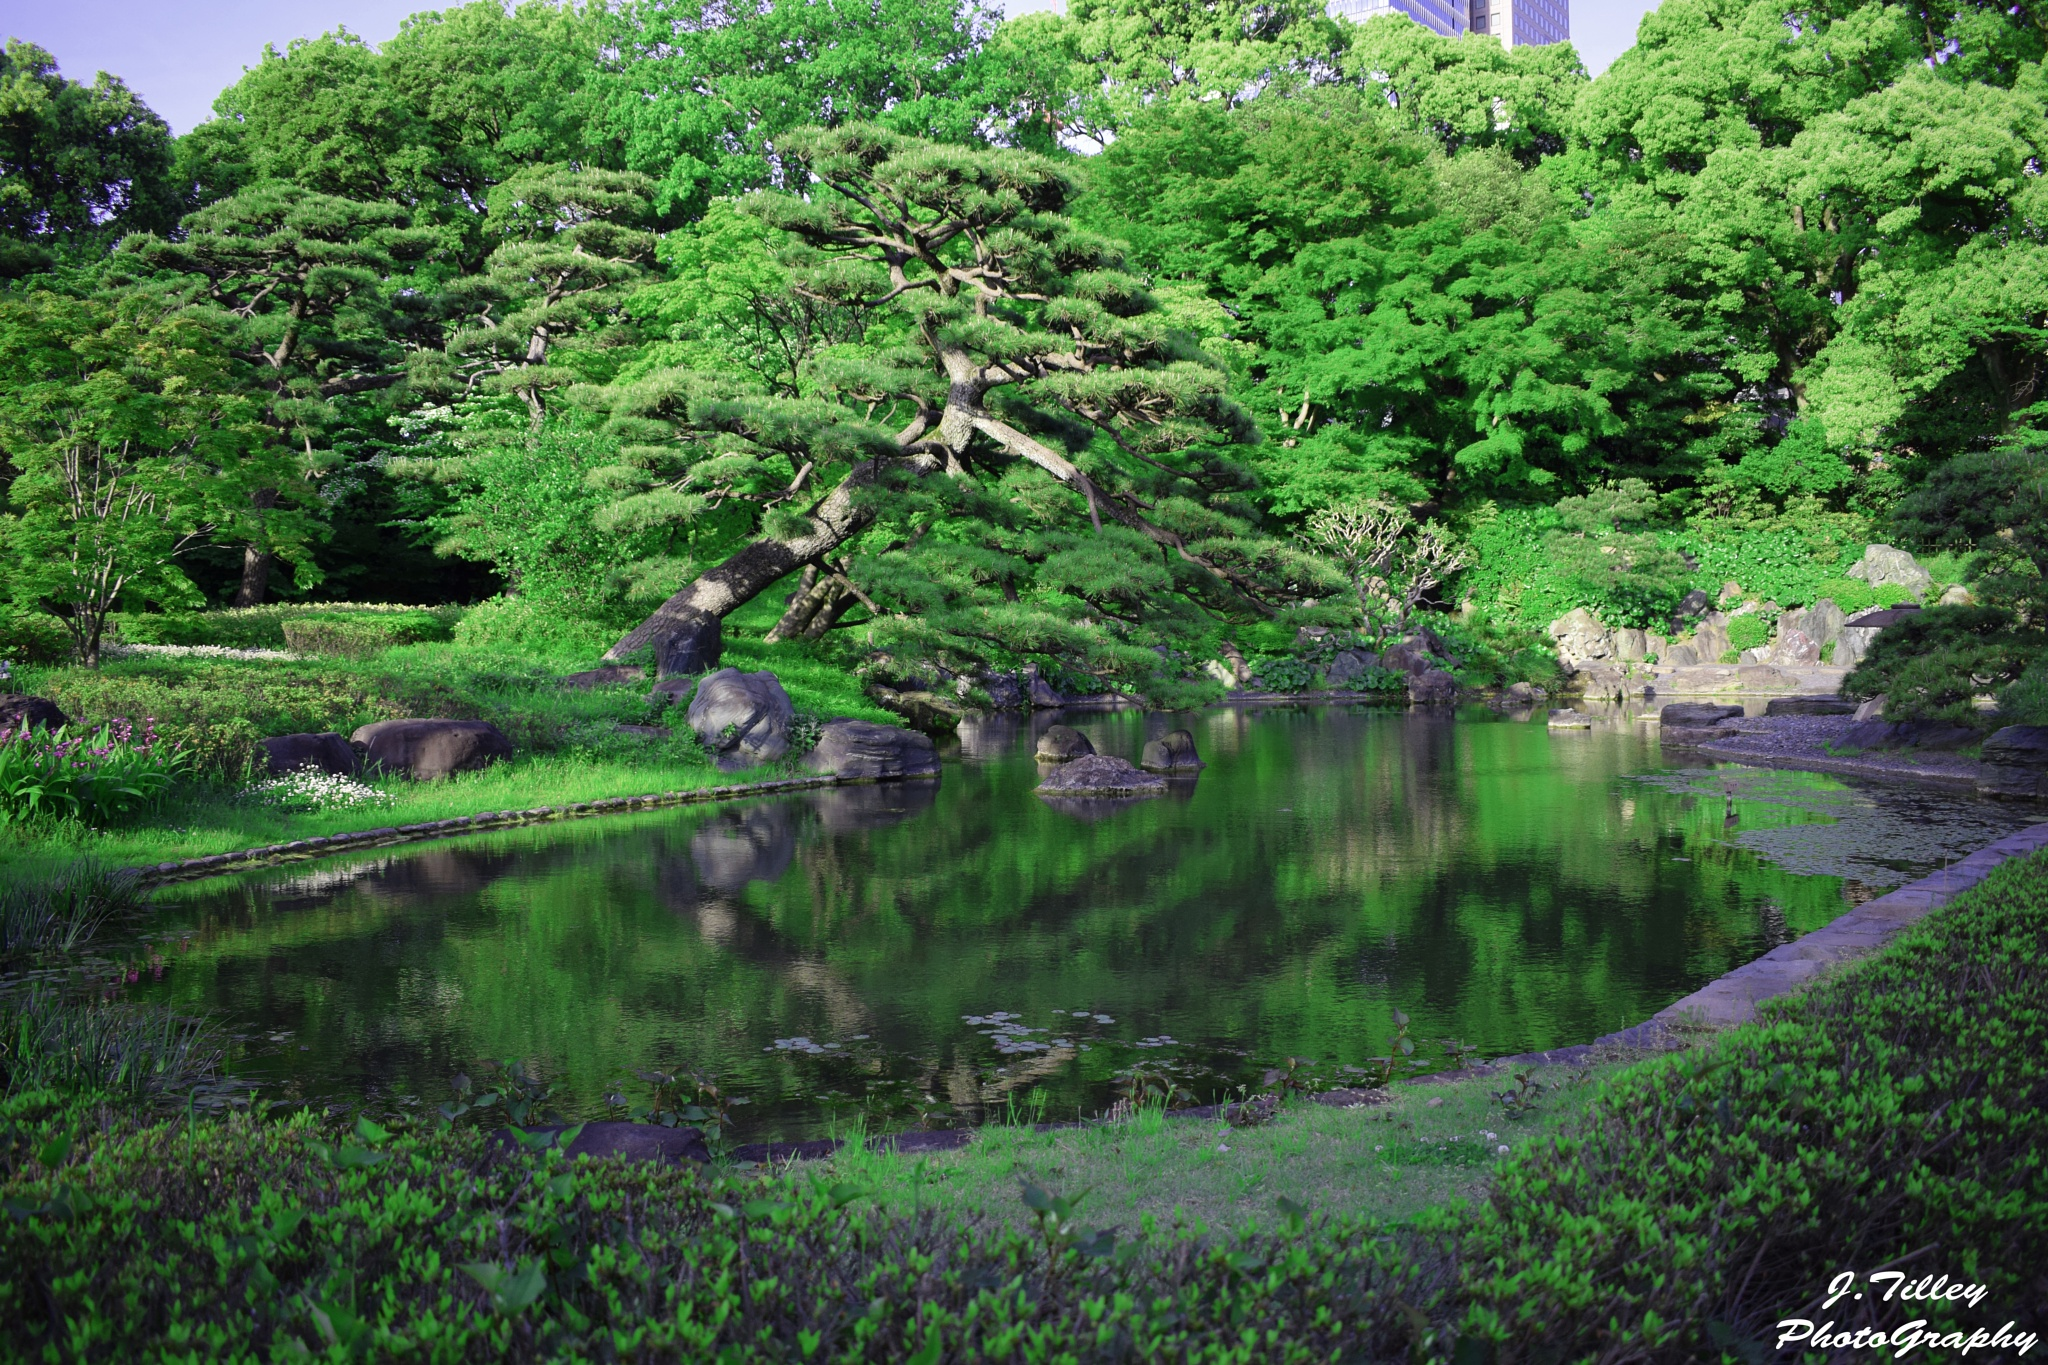 Imperial Palace Garden by Jack Tilley